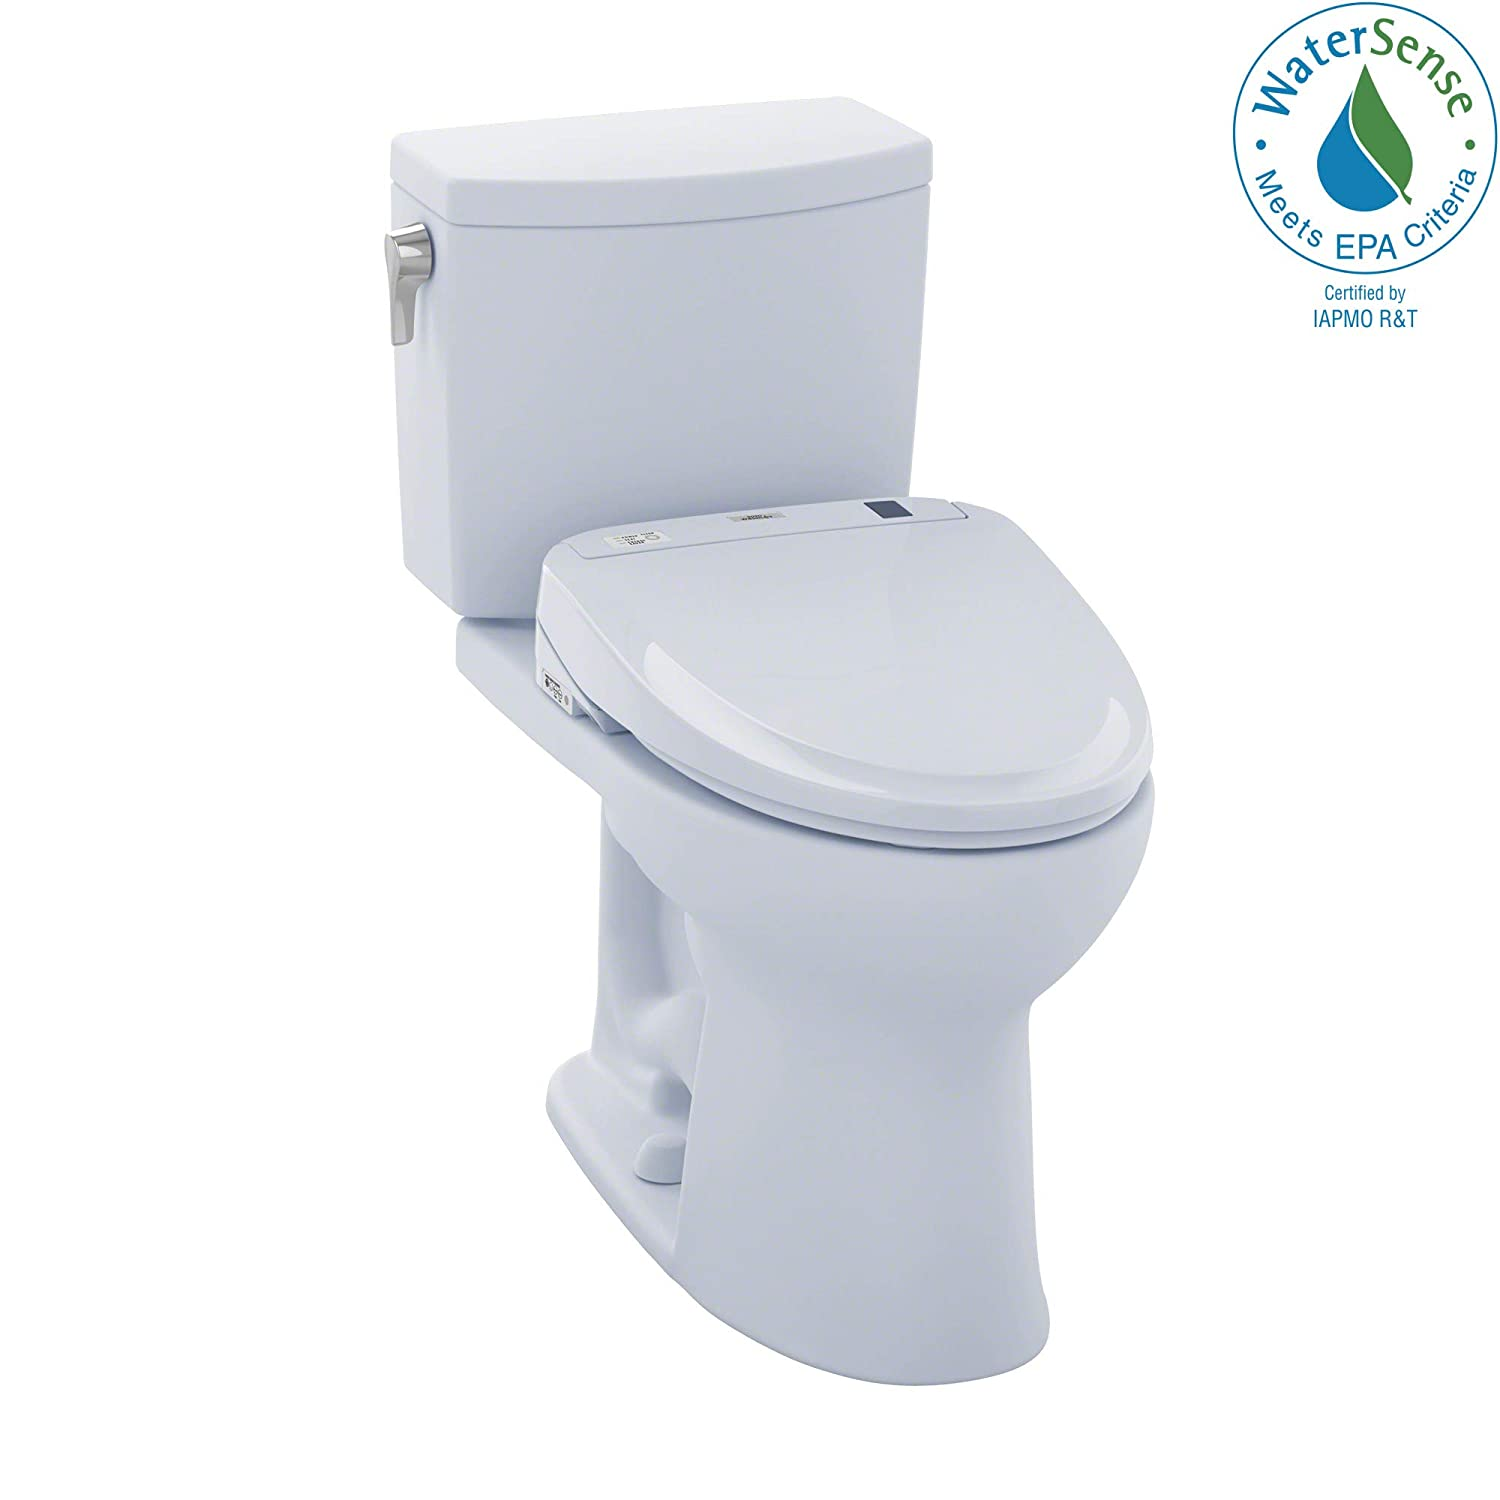 TOTO MW454574CUFG#01 S300e WASHLET+ Kit, Drake II 1G Elongated 1.0 GPF